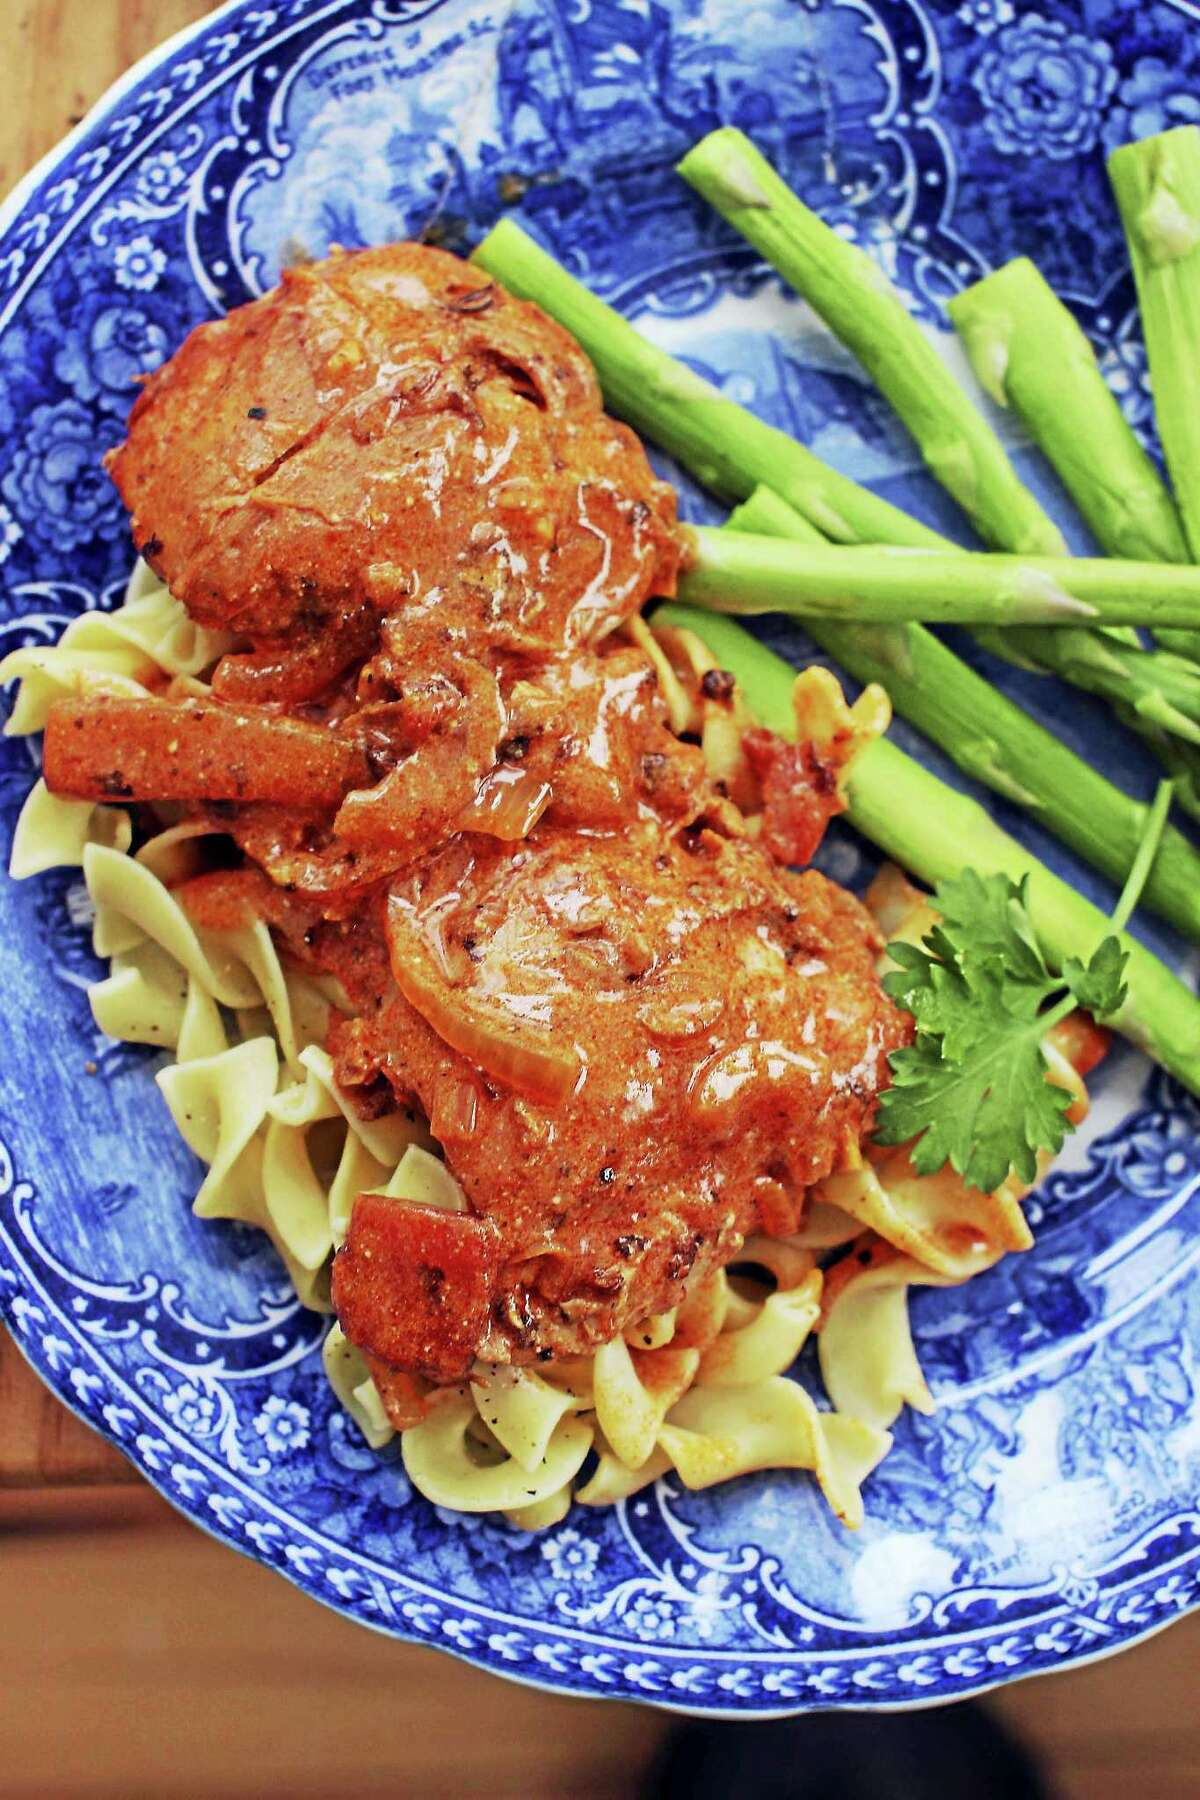 This easy weeknight chicken dish sports a sauce rich with tomatoes and paprika. Stirring sour cream into it just before serving transforms it into a true comfort food.